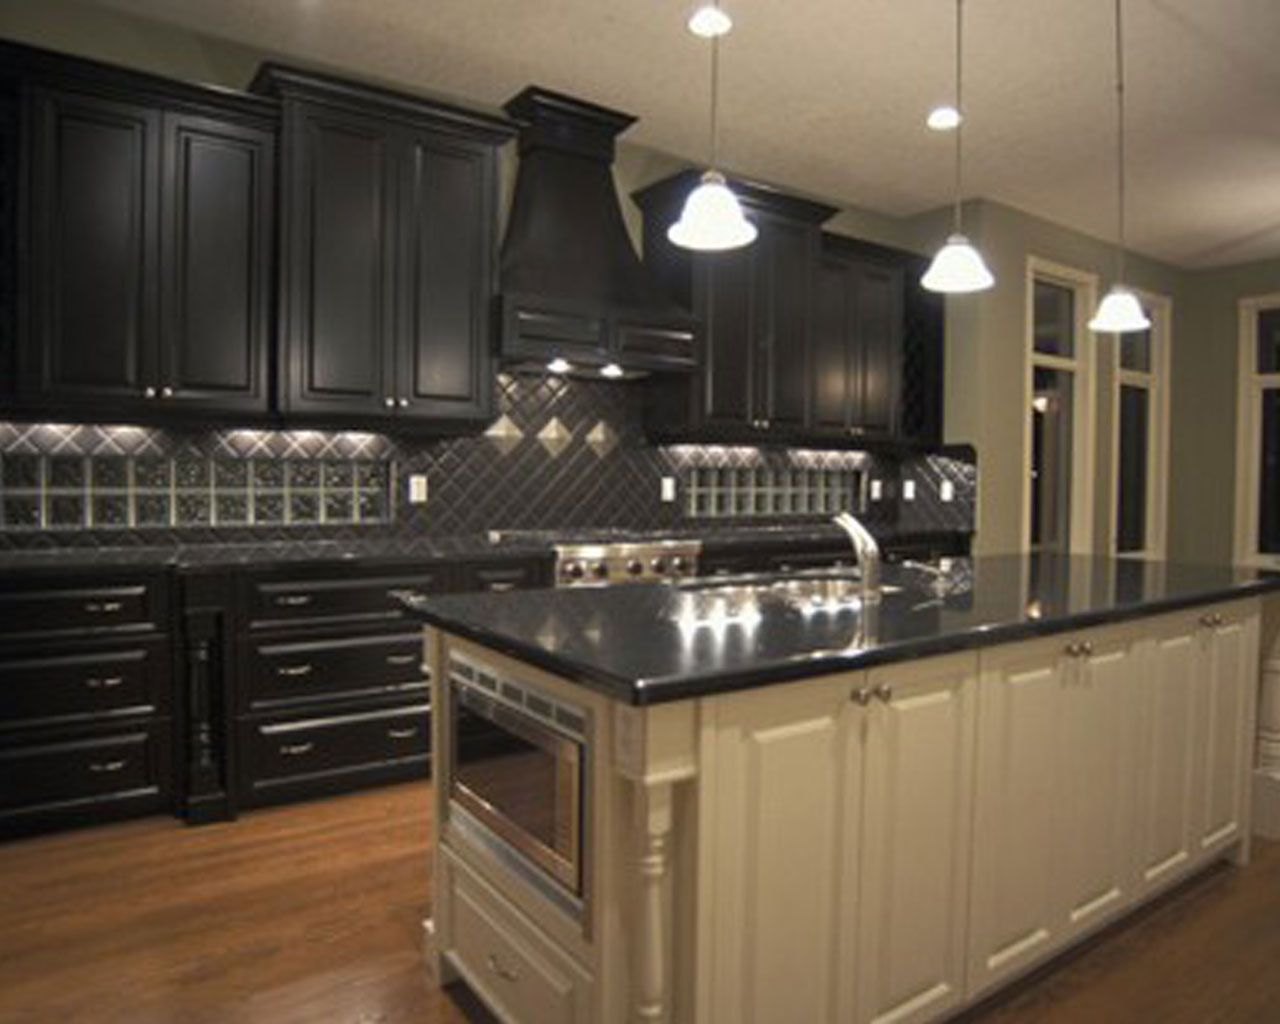 Finest Design Black Kitchen Cabinets Wallpapers New House Pinterest Black Kitchens Black